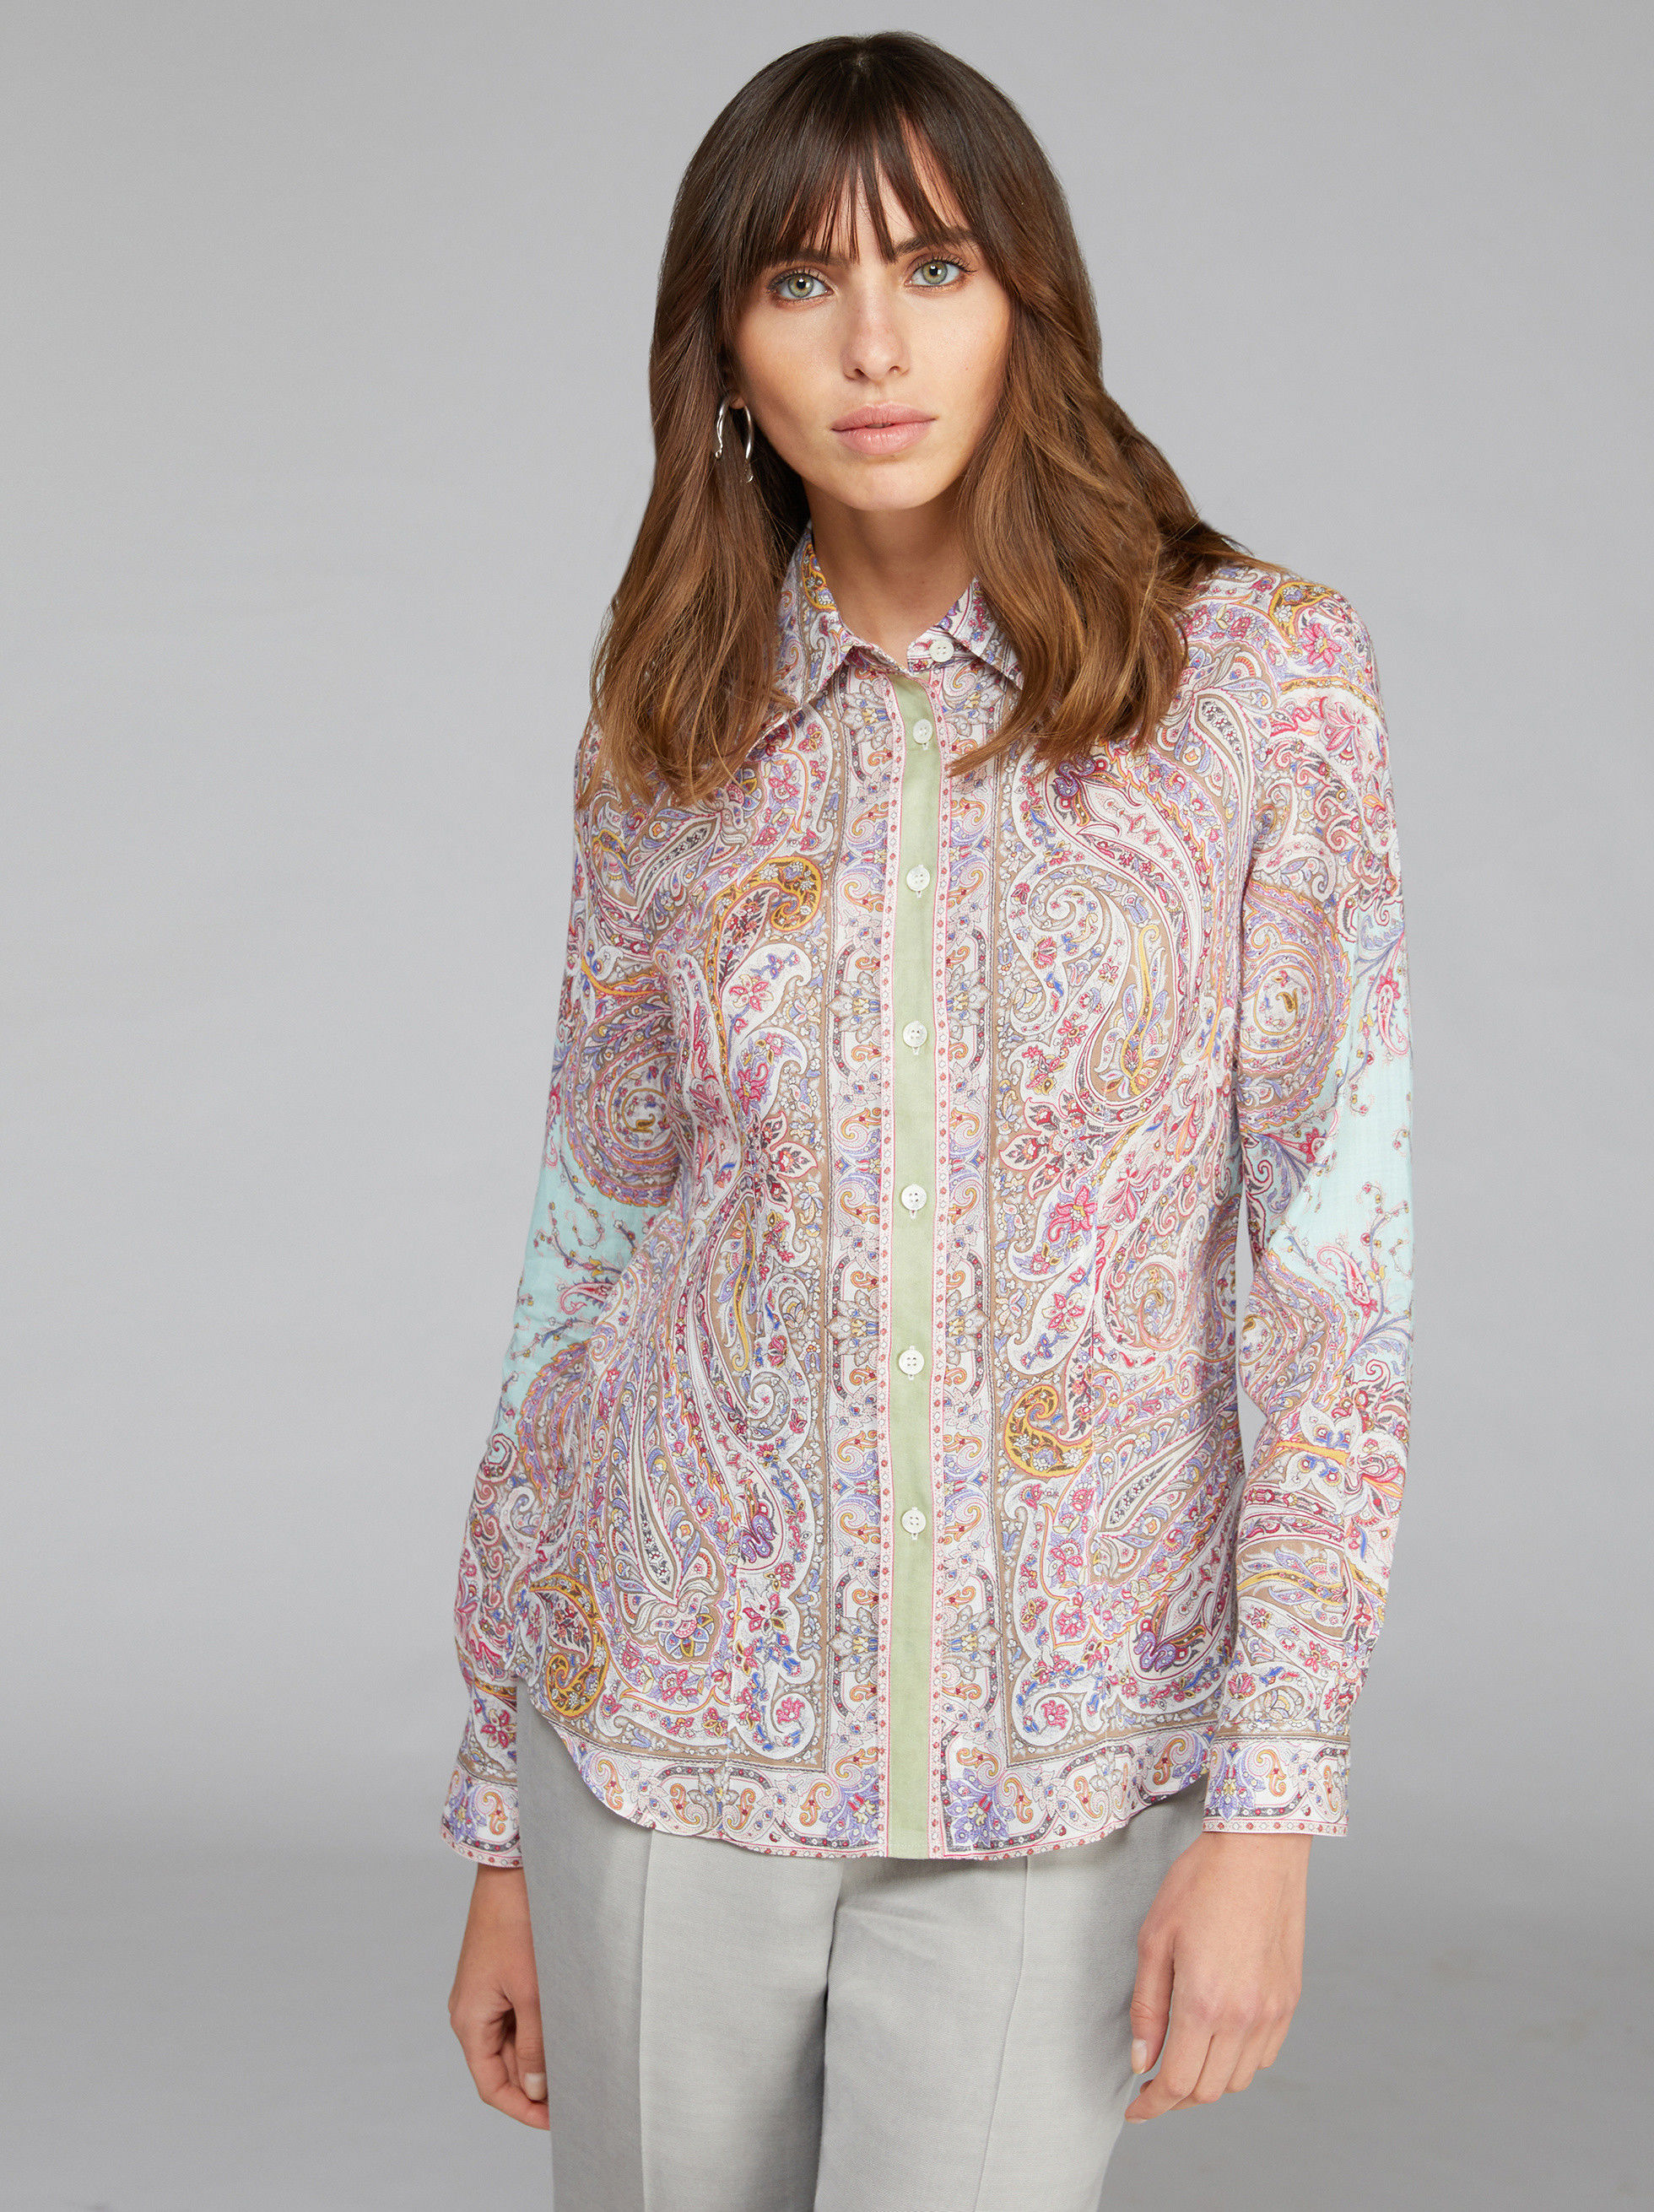 BLUSE MIT FLORALEM PAISLEYMUSTER